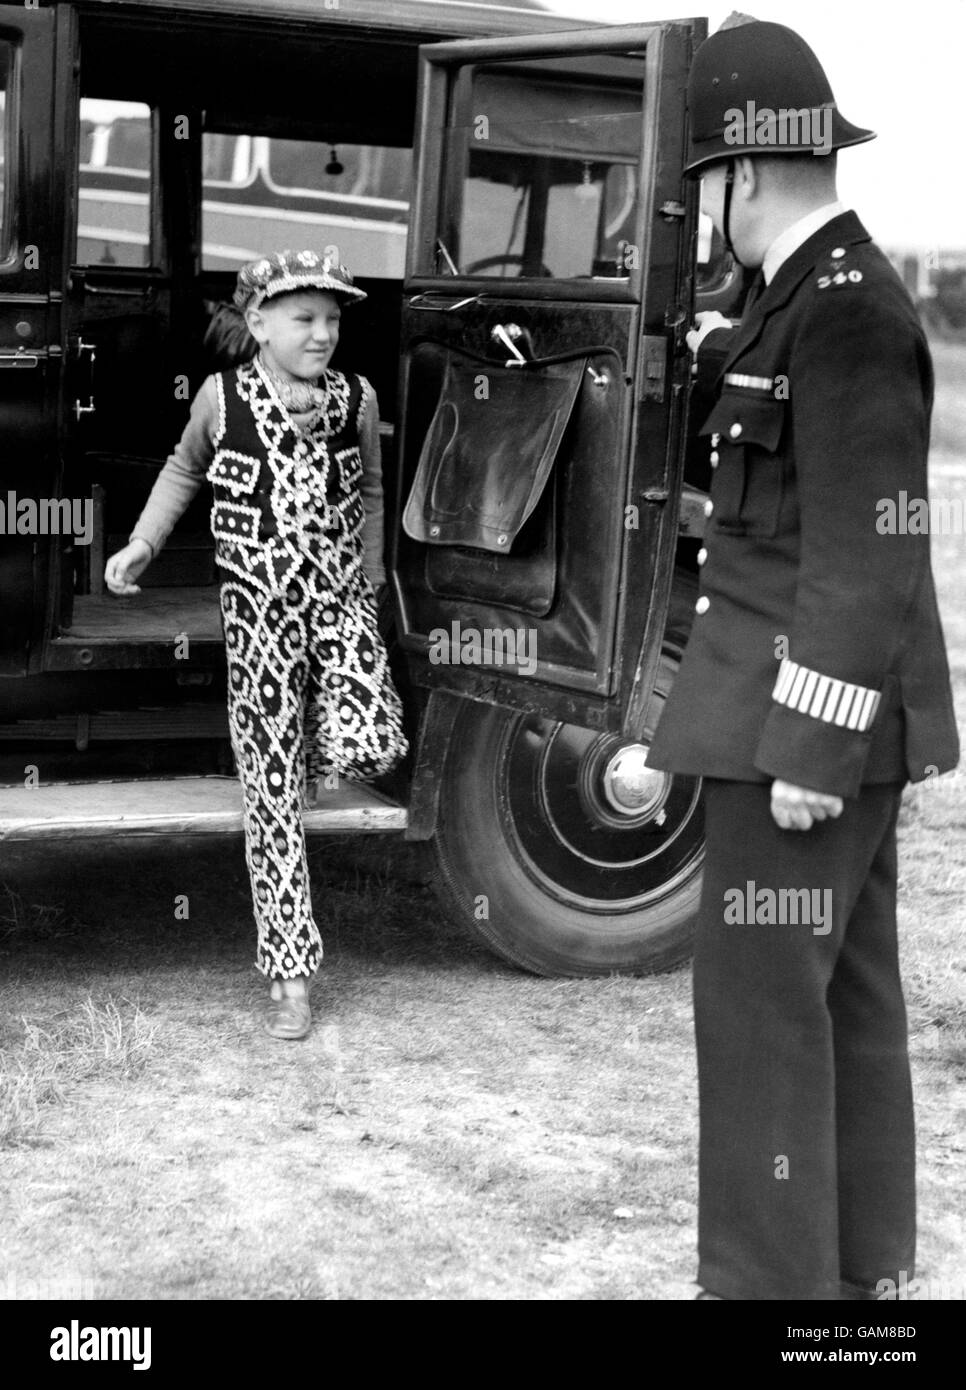 Pearly Kings and Queens - Epsom - 1952 - Stock Image